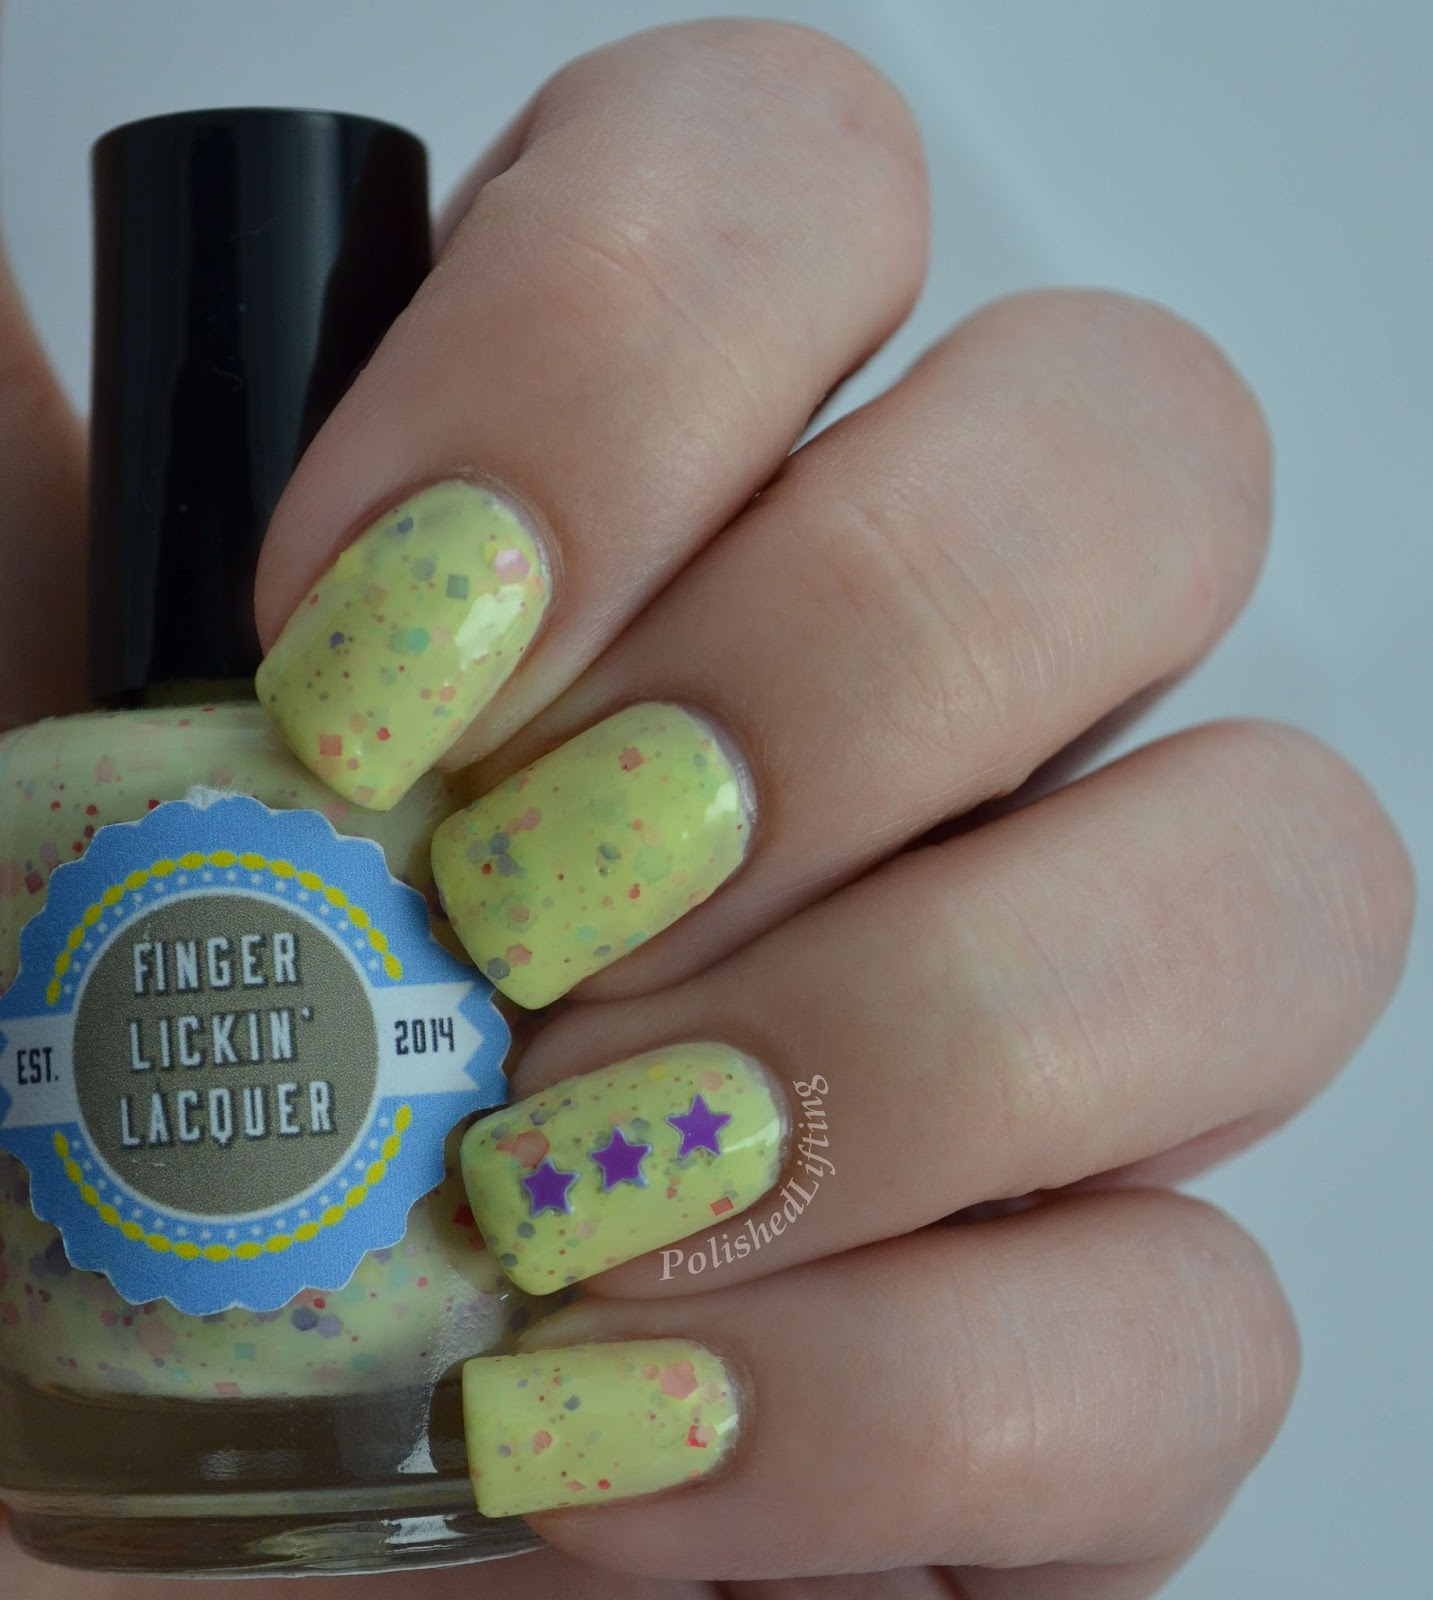 Finger Lickin' Lacquer Bby Chickens custom